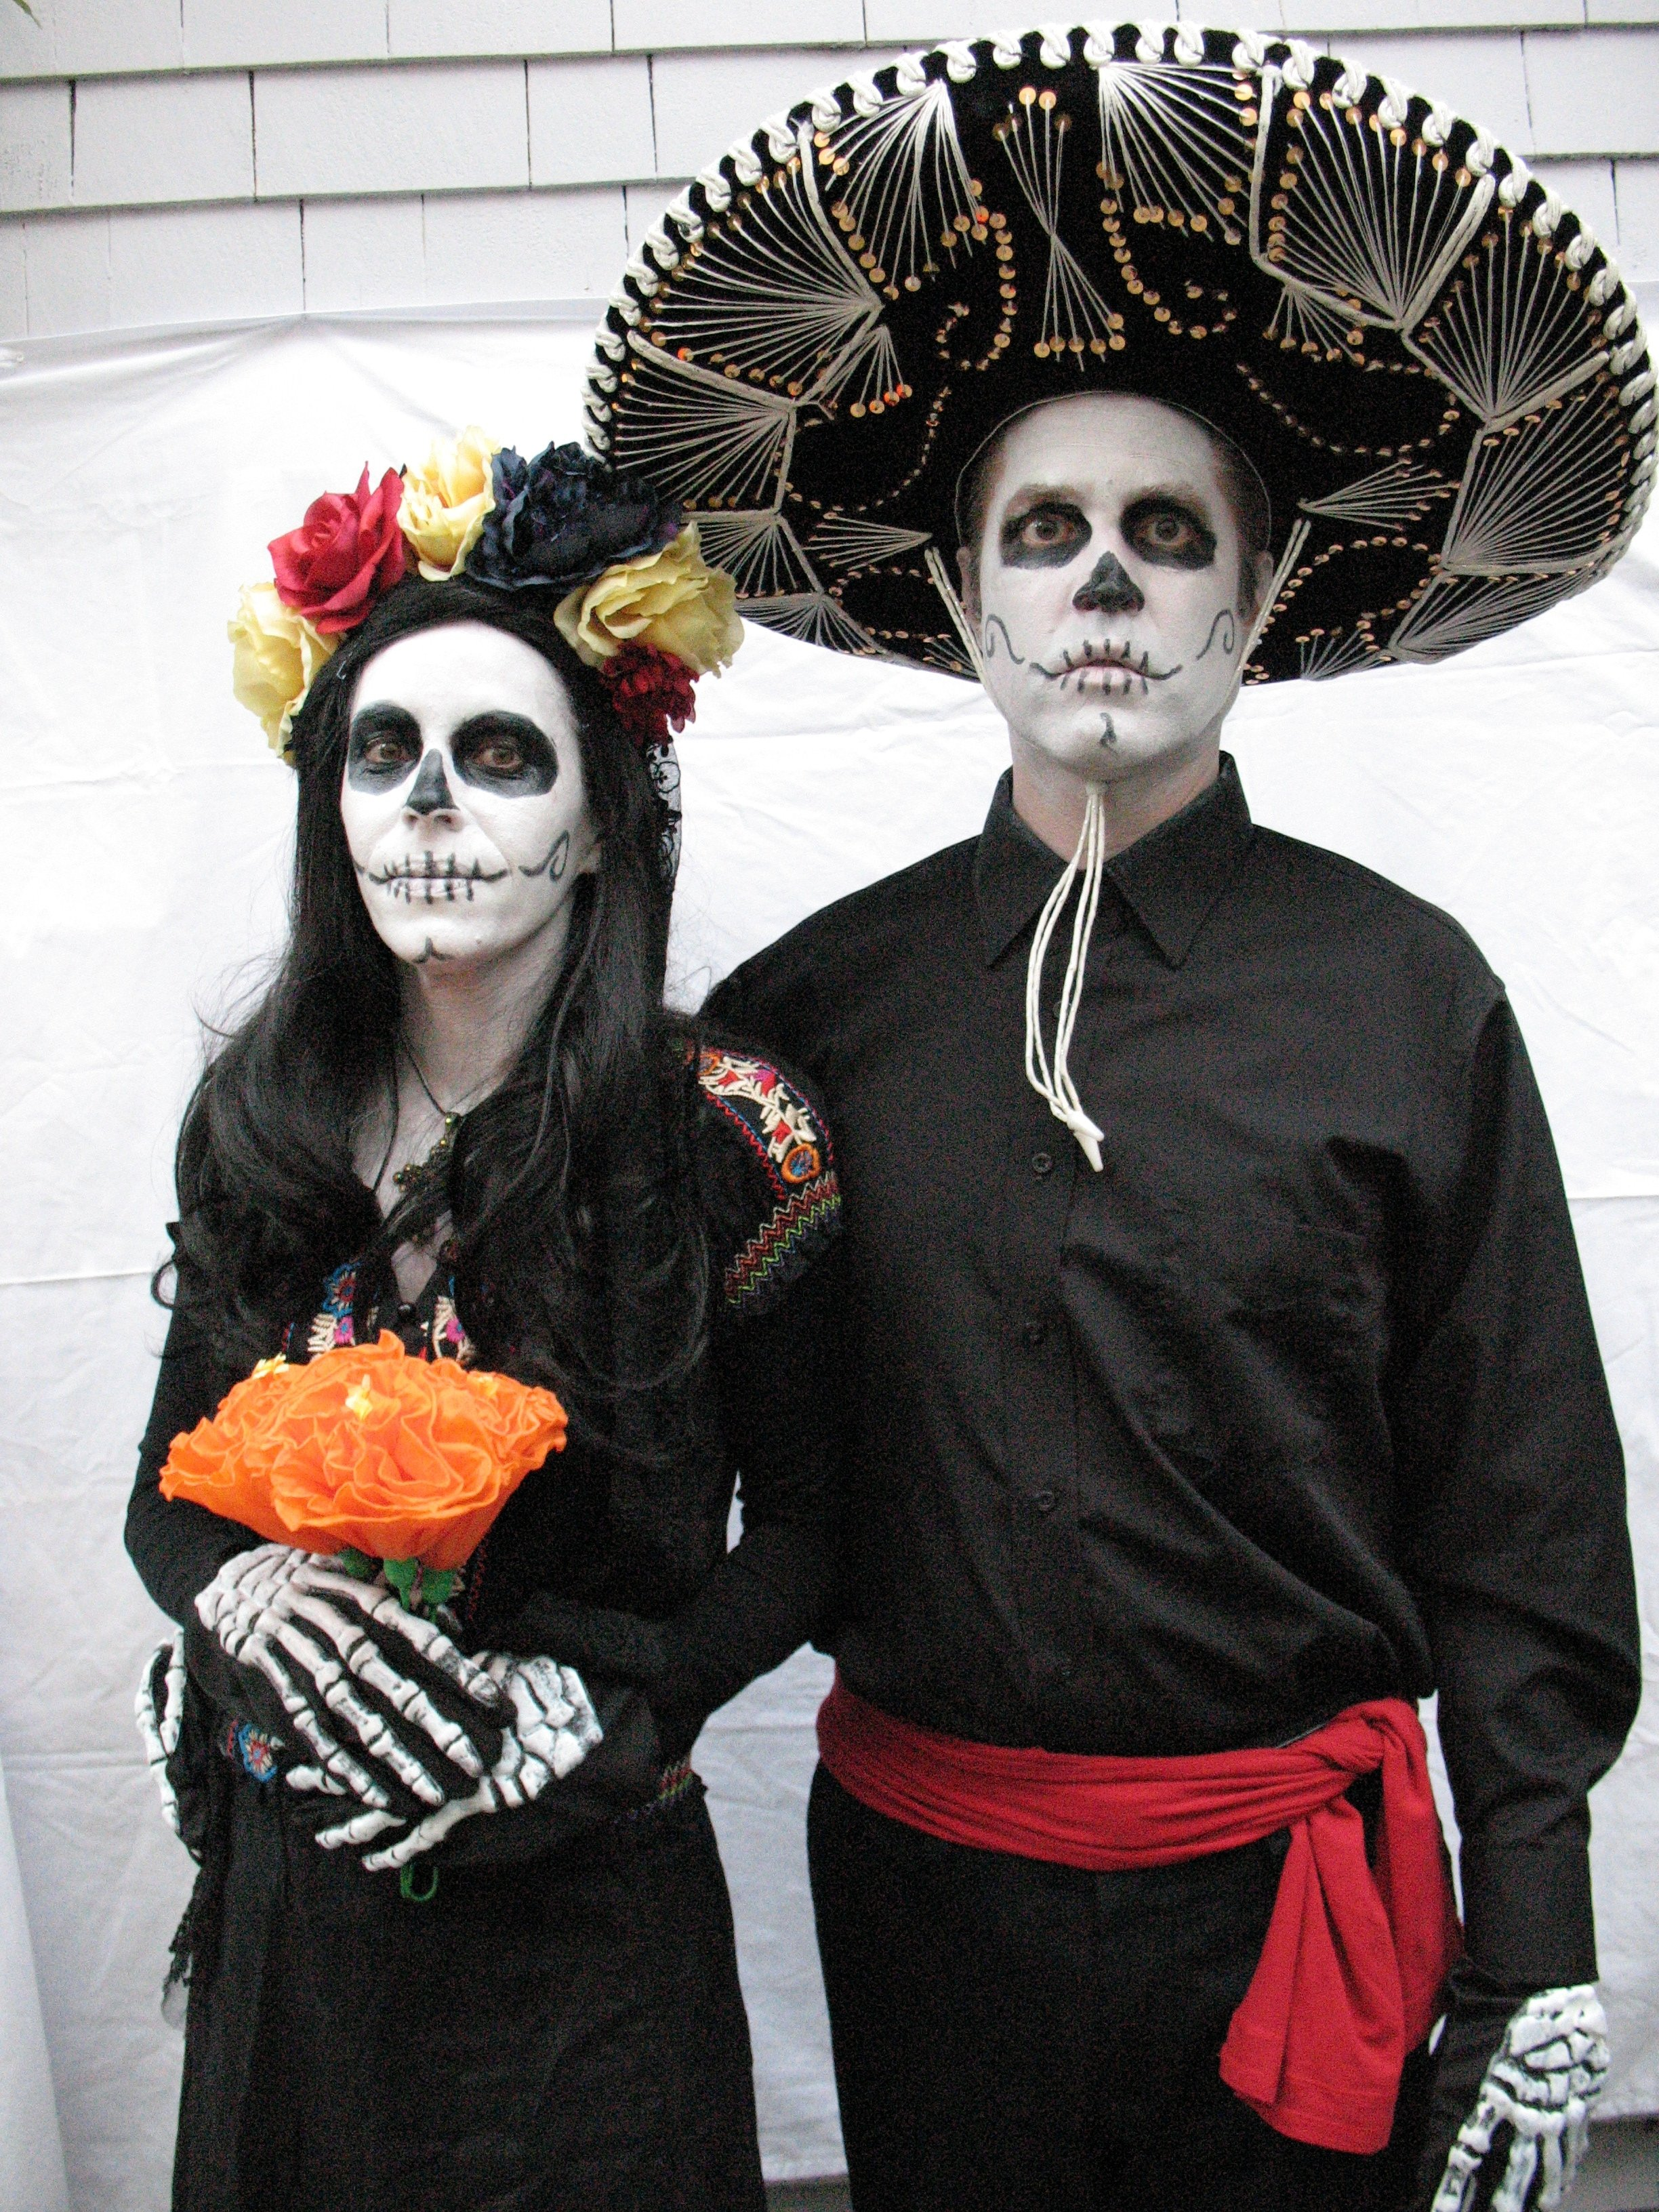 10 Nice Day Of The Dead Costumes Ideas day of the dead costumes dia de los muertos all hallows eve 1 2020